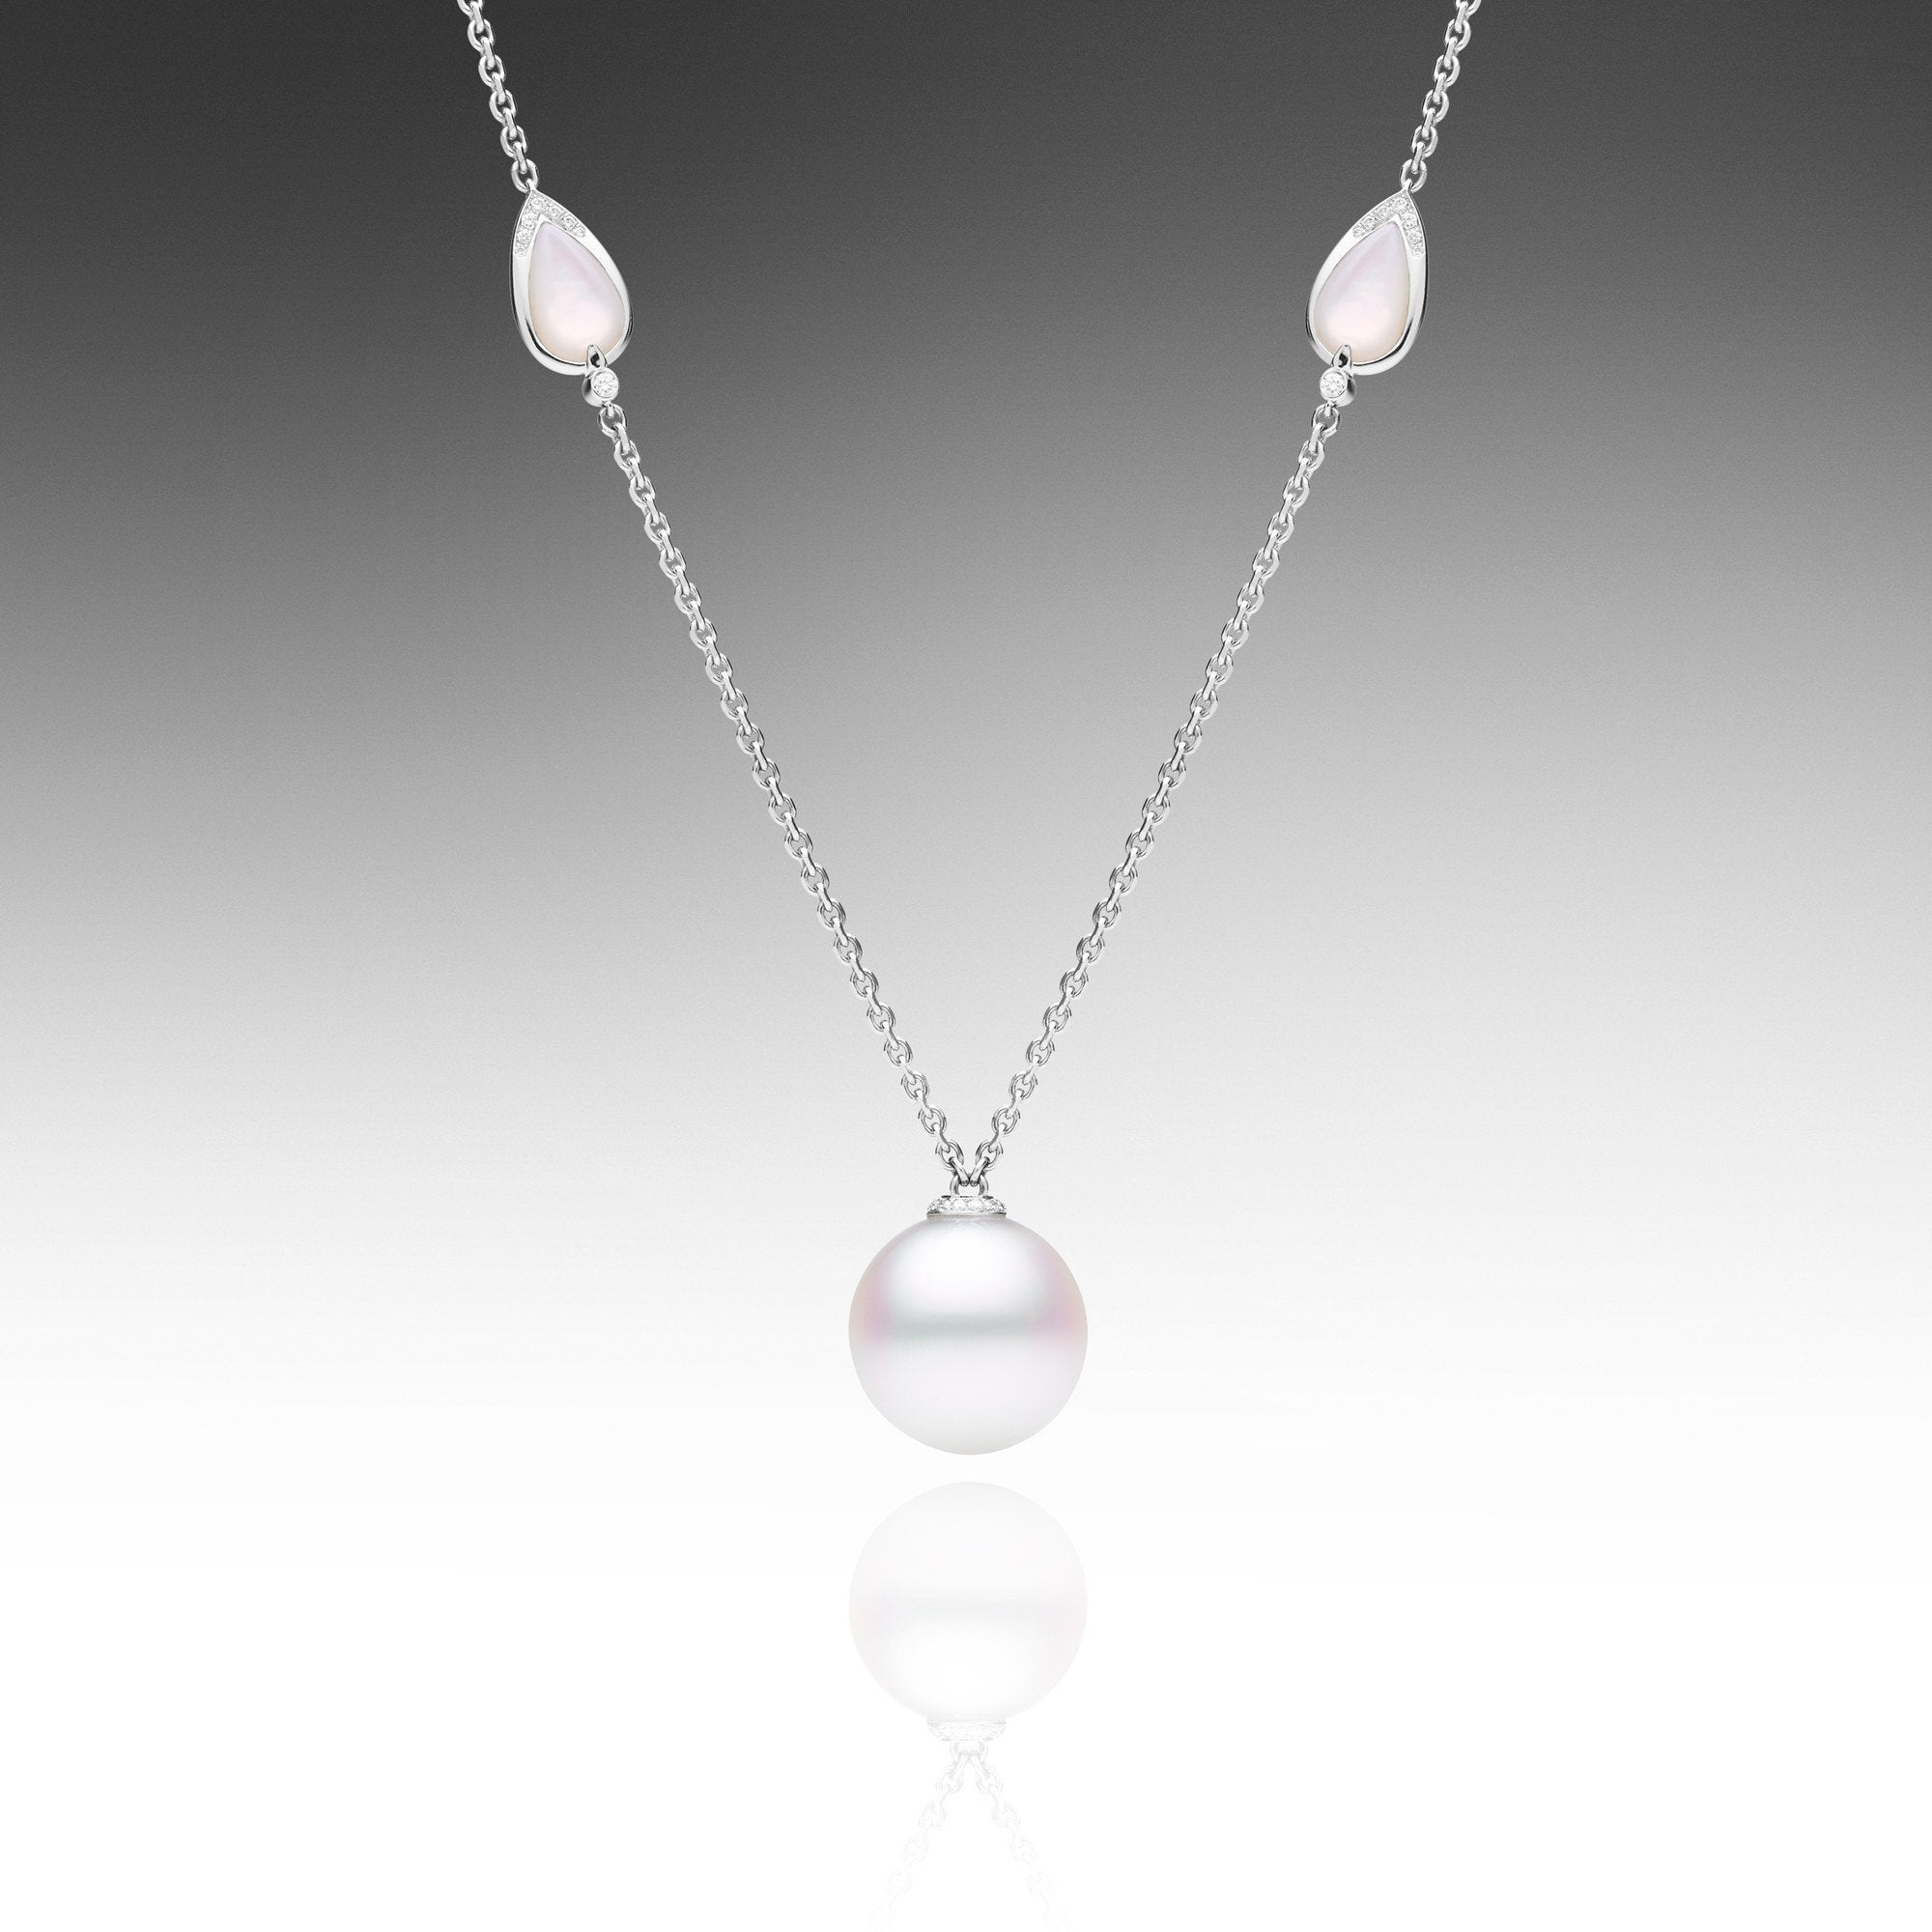 necklace fullsizeoutput pearl elegant designs products suzannas dream single